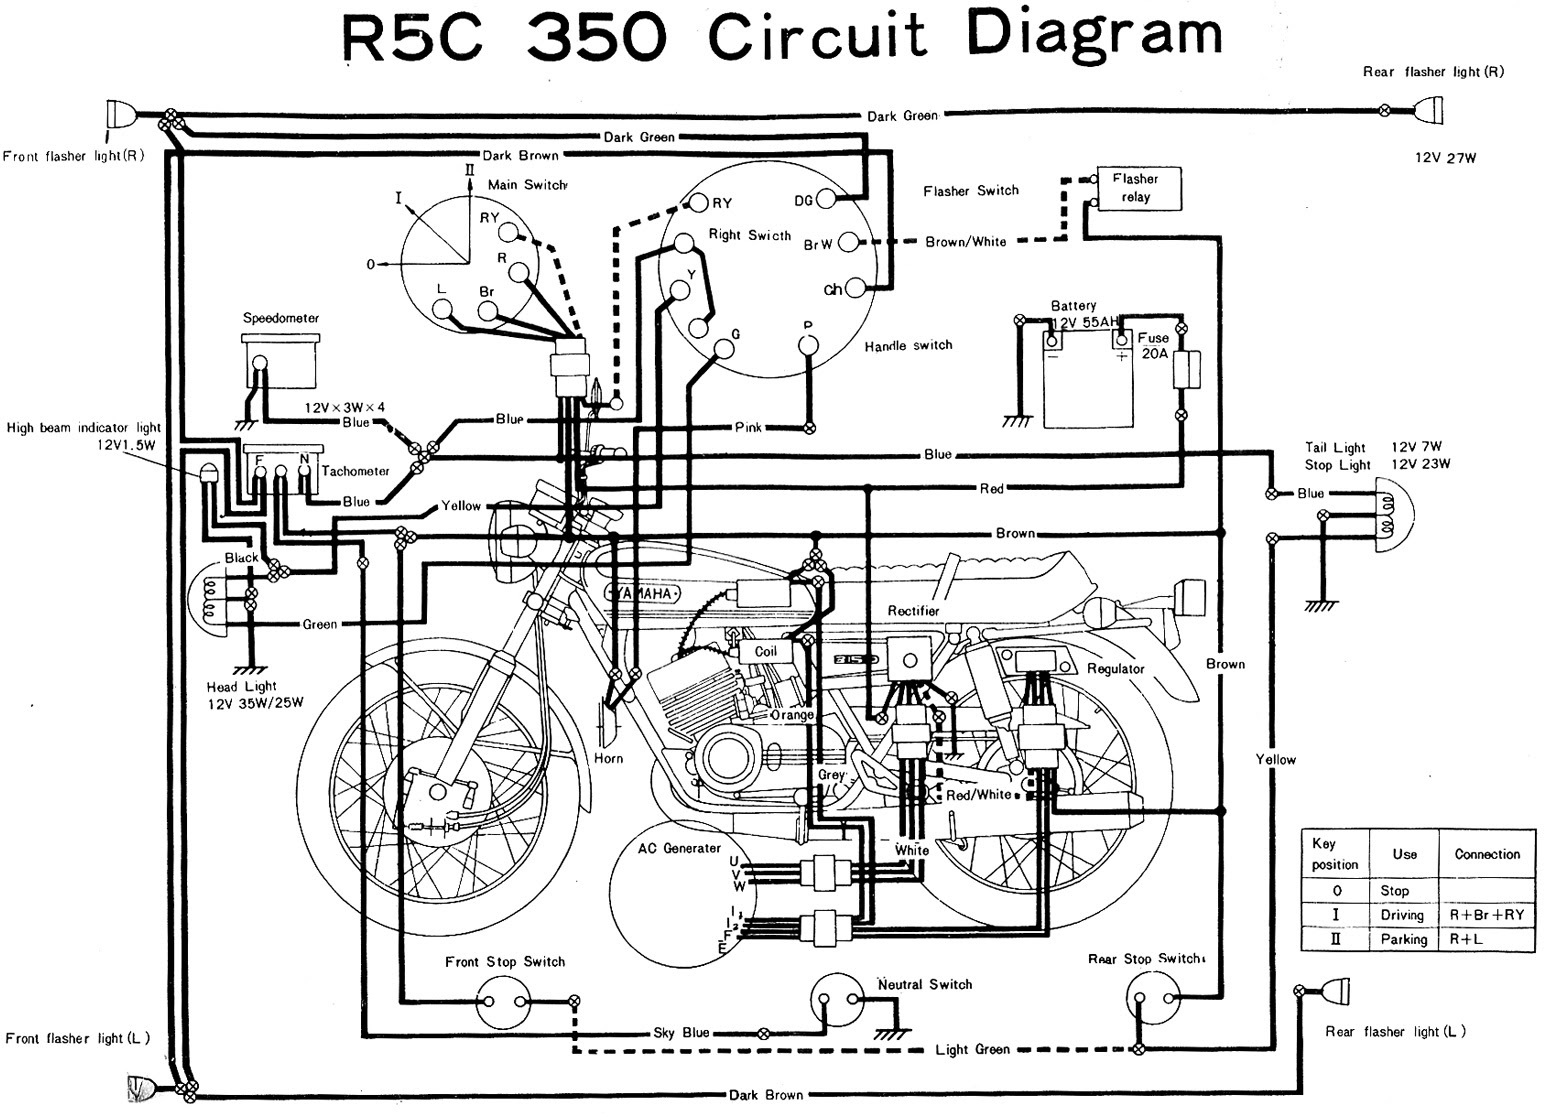 1969 Harley Electra Glide Wiring Diagram Melex Electric Golf Cart Wiring Diagram For Wiring Diagram Schematics